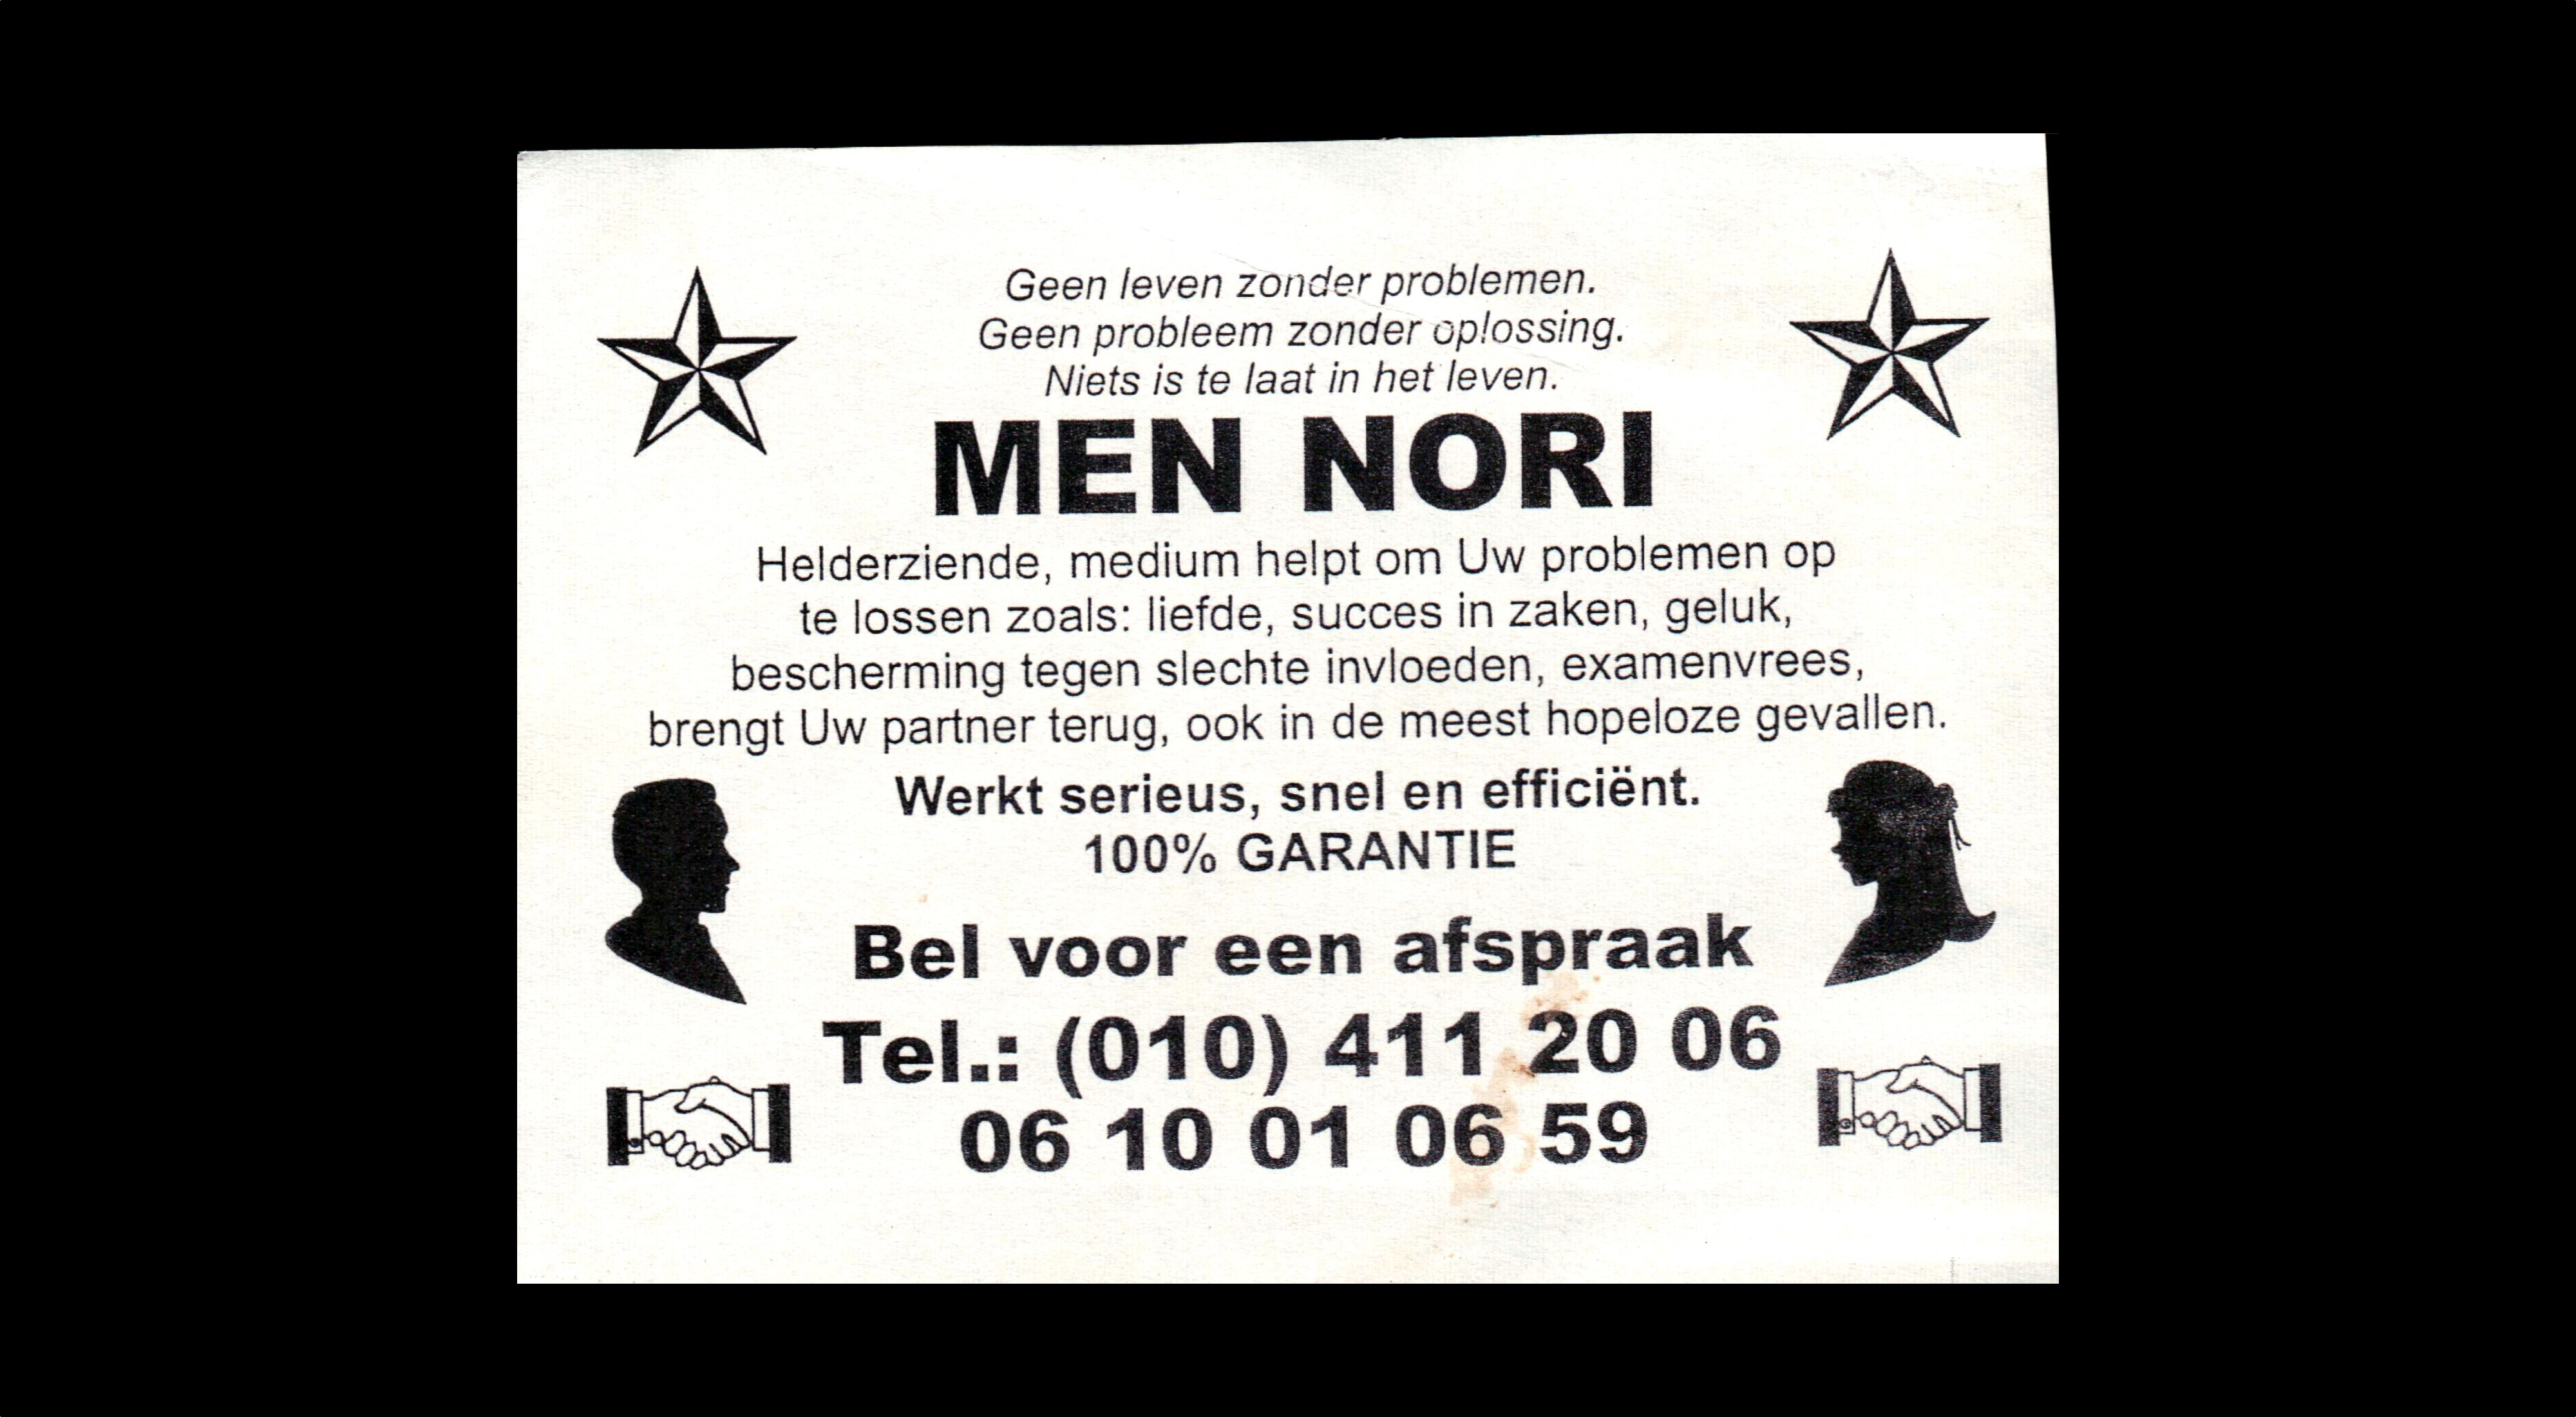 card of MEN NORI